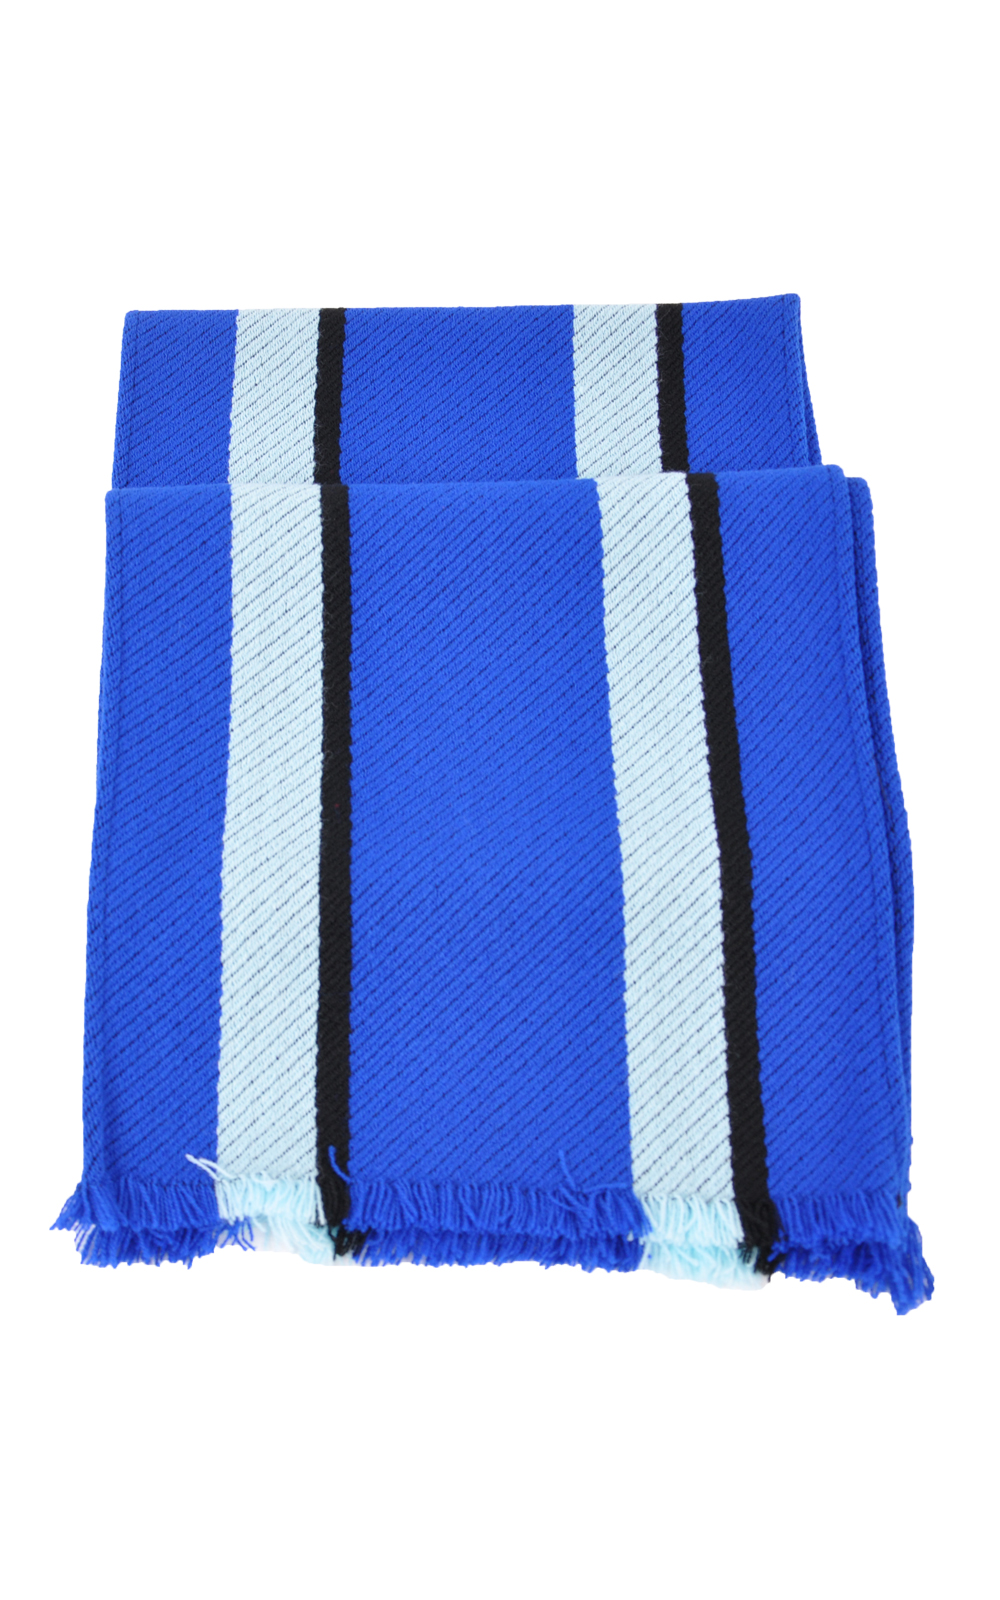 Picture of Ballycastle HS Scarf - Unicol